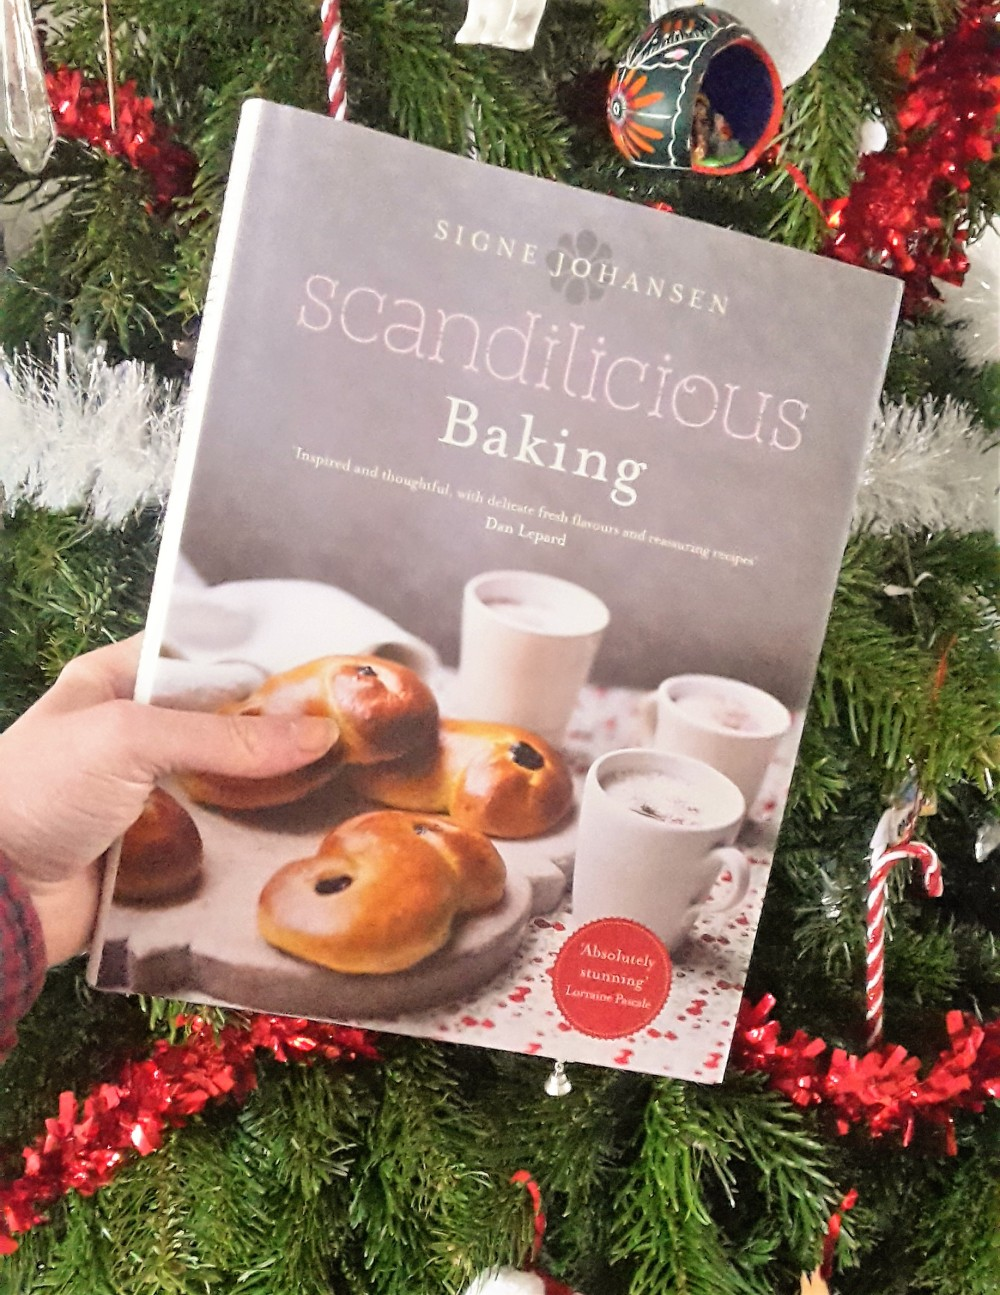 Scandilicious Baking by Signe Johansen